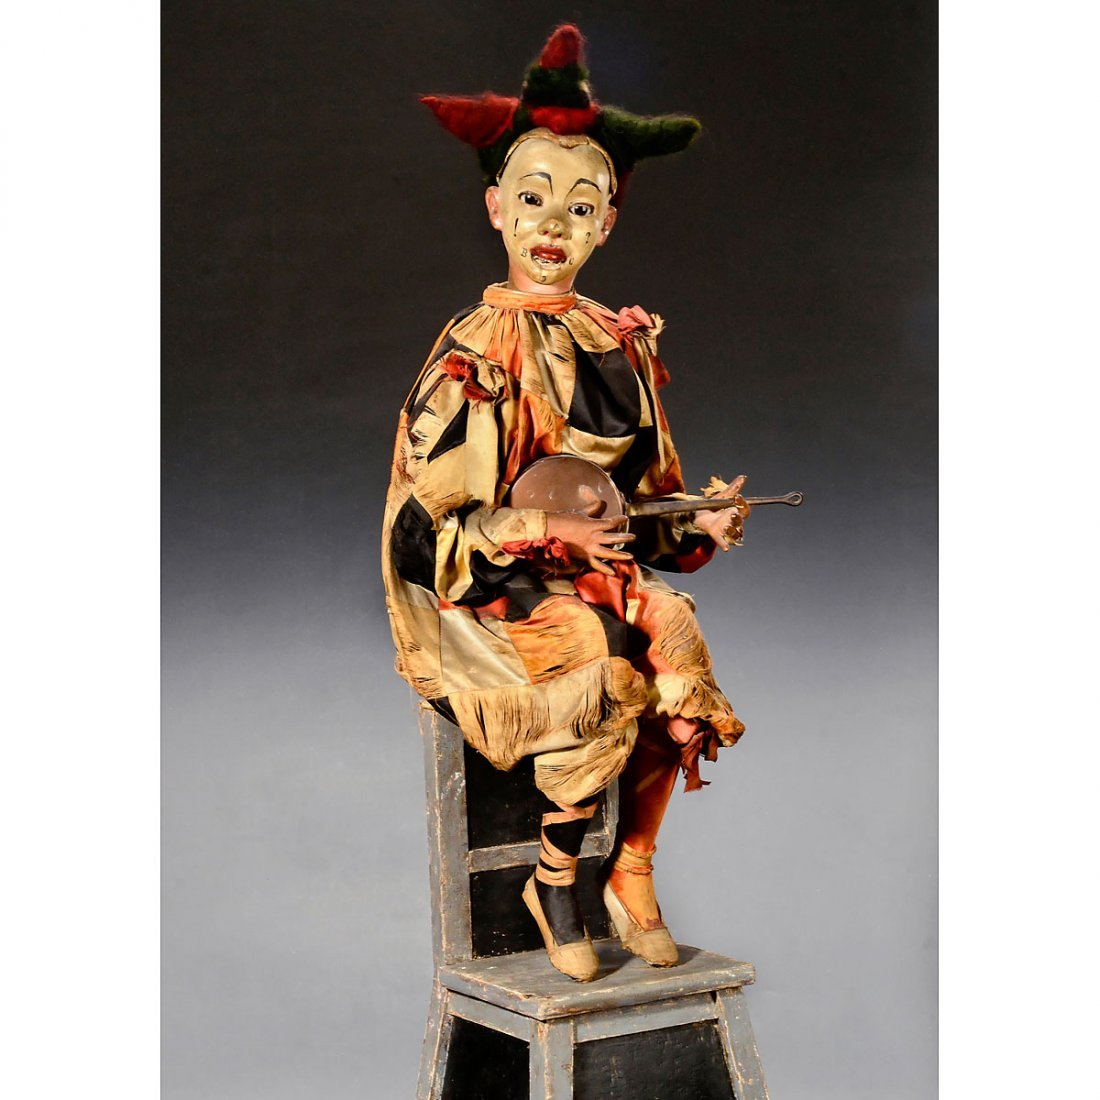 Eccentric Clown Musical Automaton by Gustave & Henry